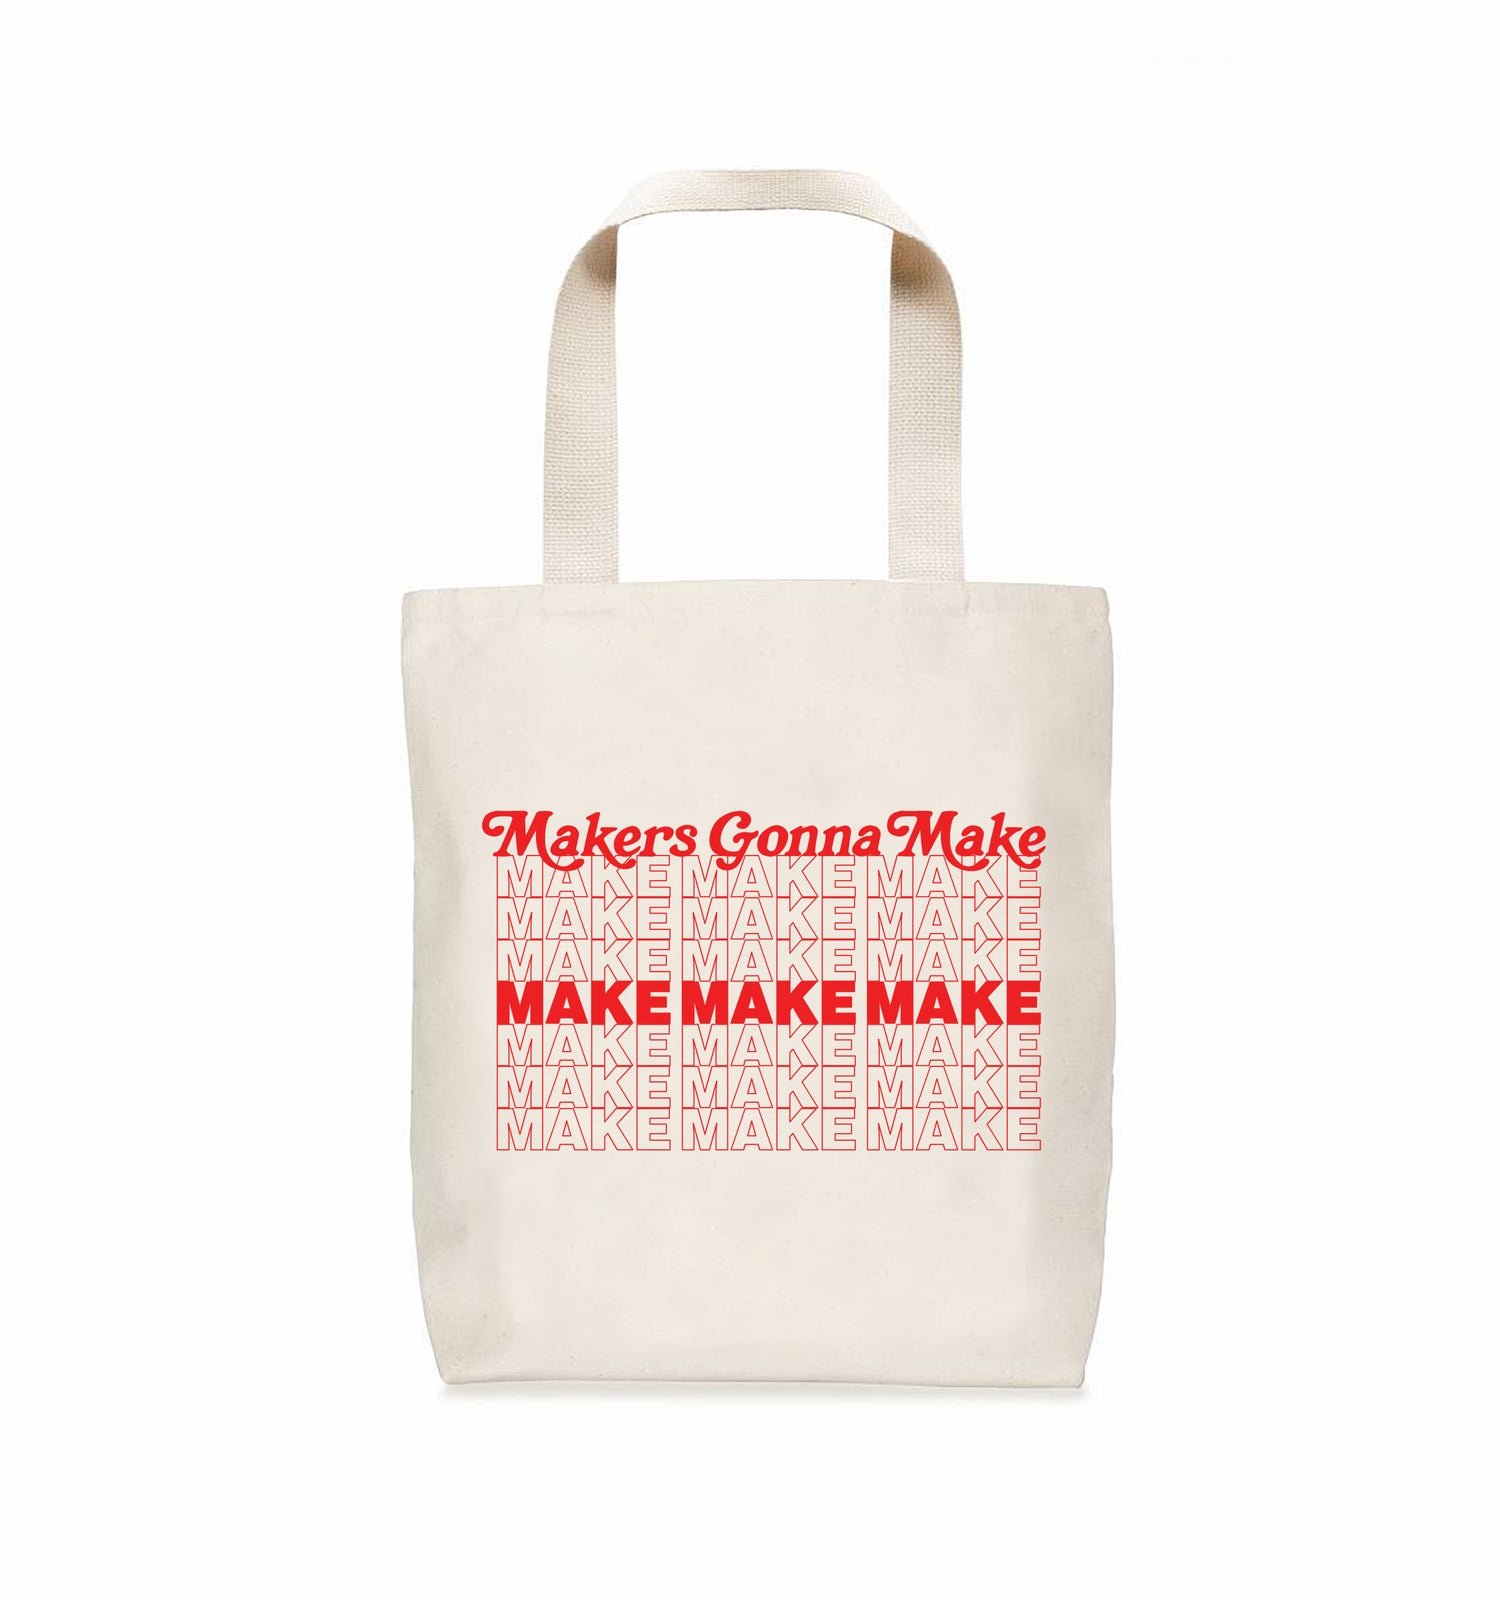 Image of Makers Gonna Make Tote